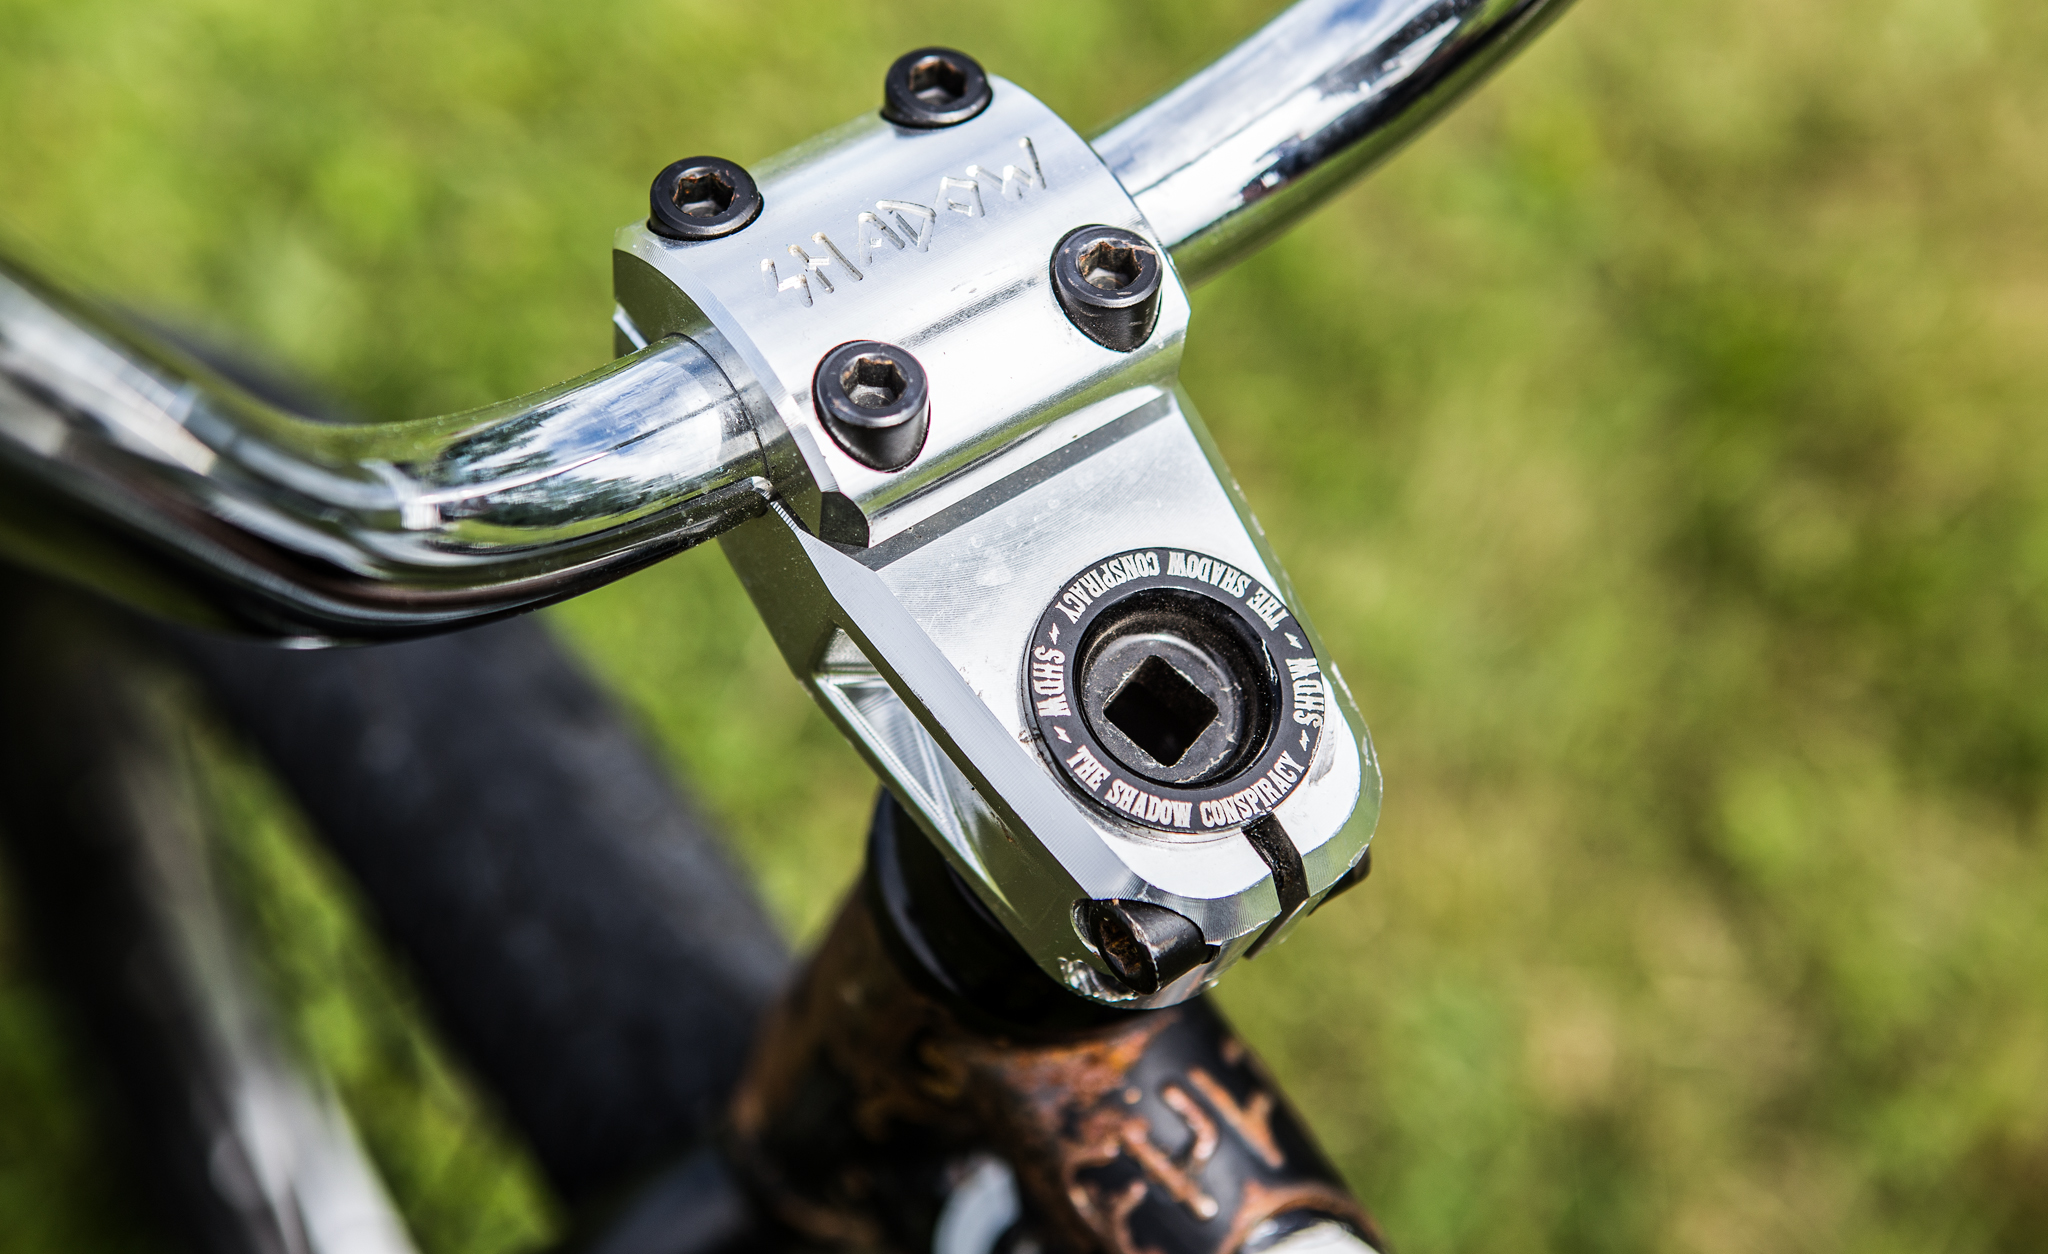 Shadow Ravager stem